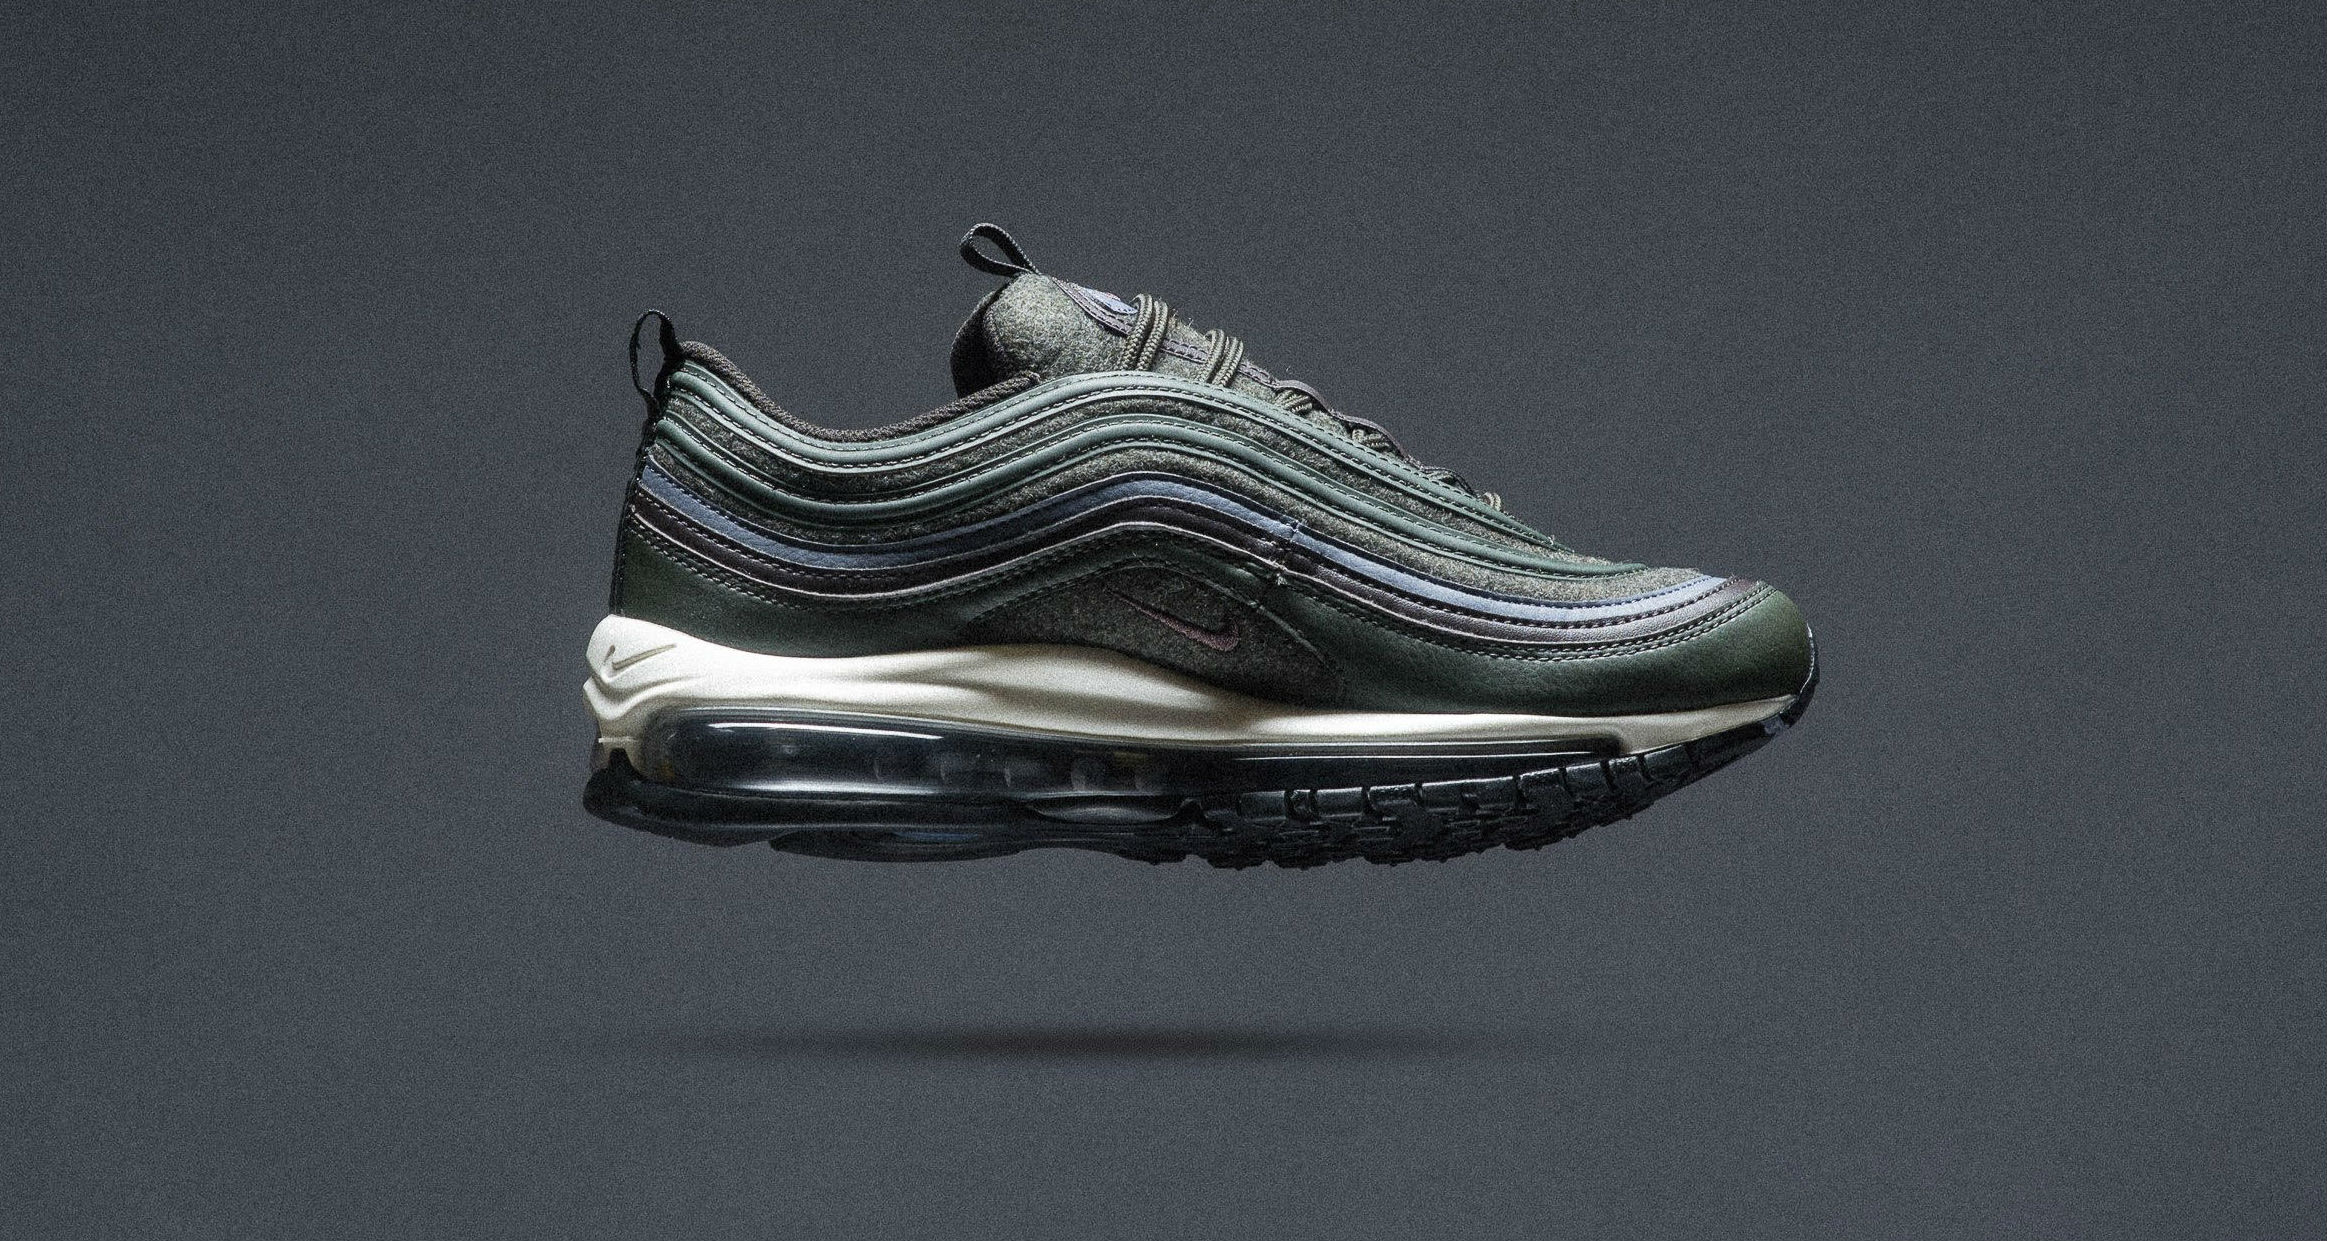 Cheap Nike AIR MAX 97 PREMIUM SEQUOIA AVAILABLE NOW The